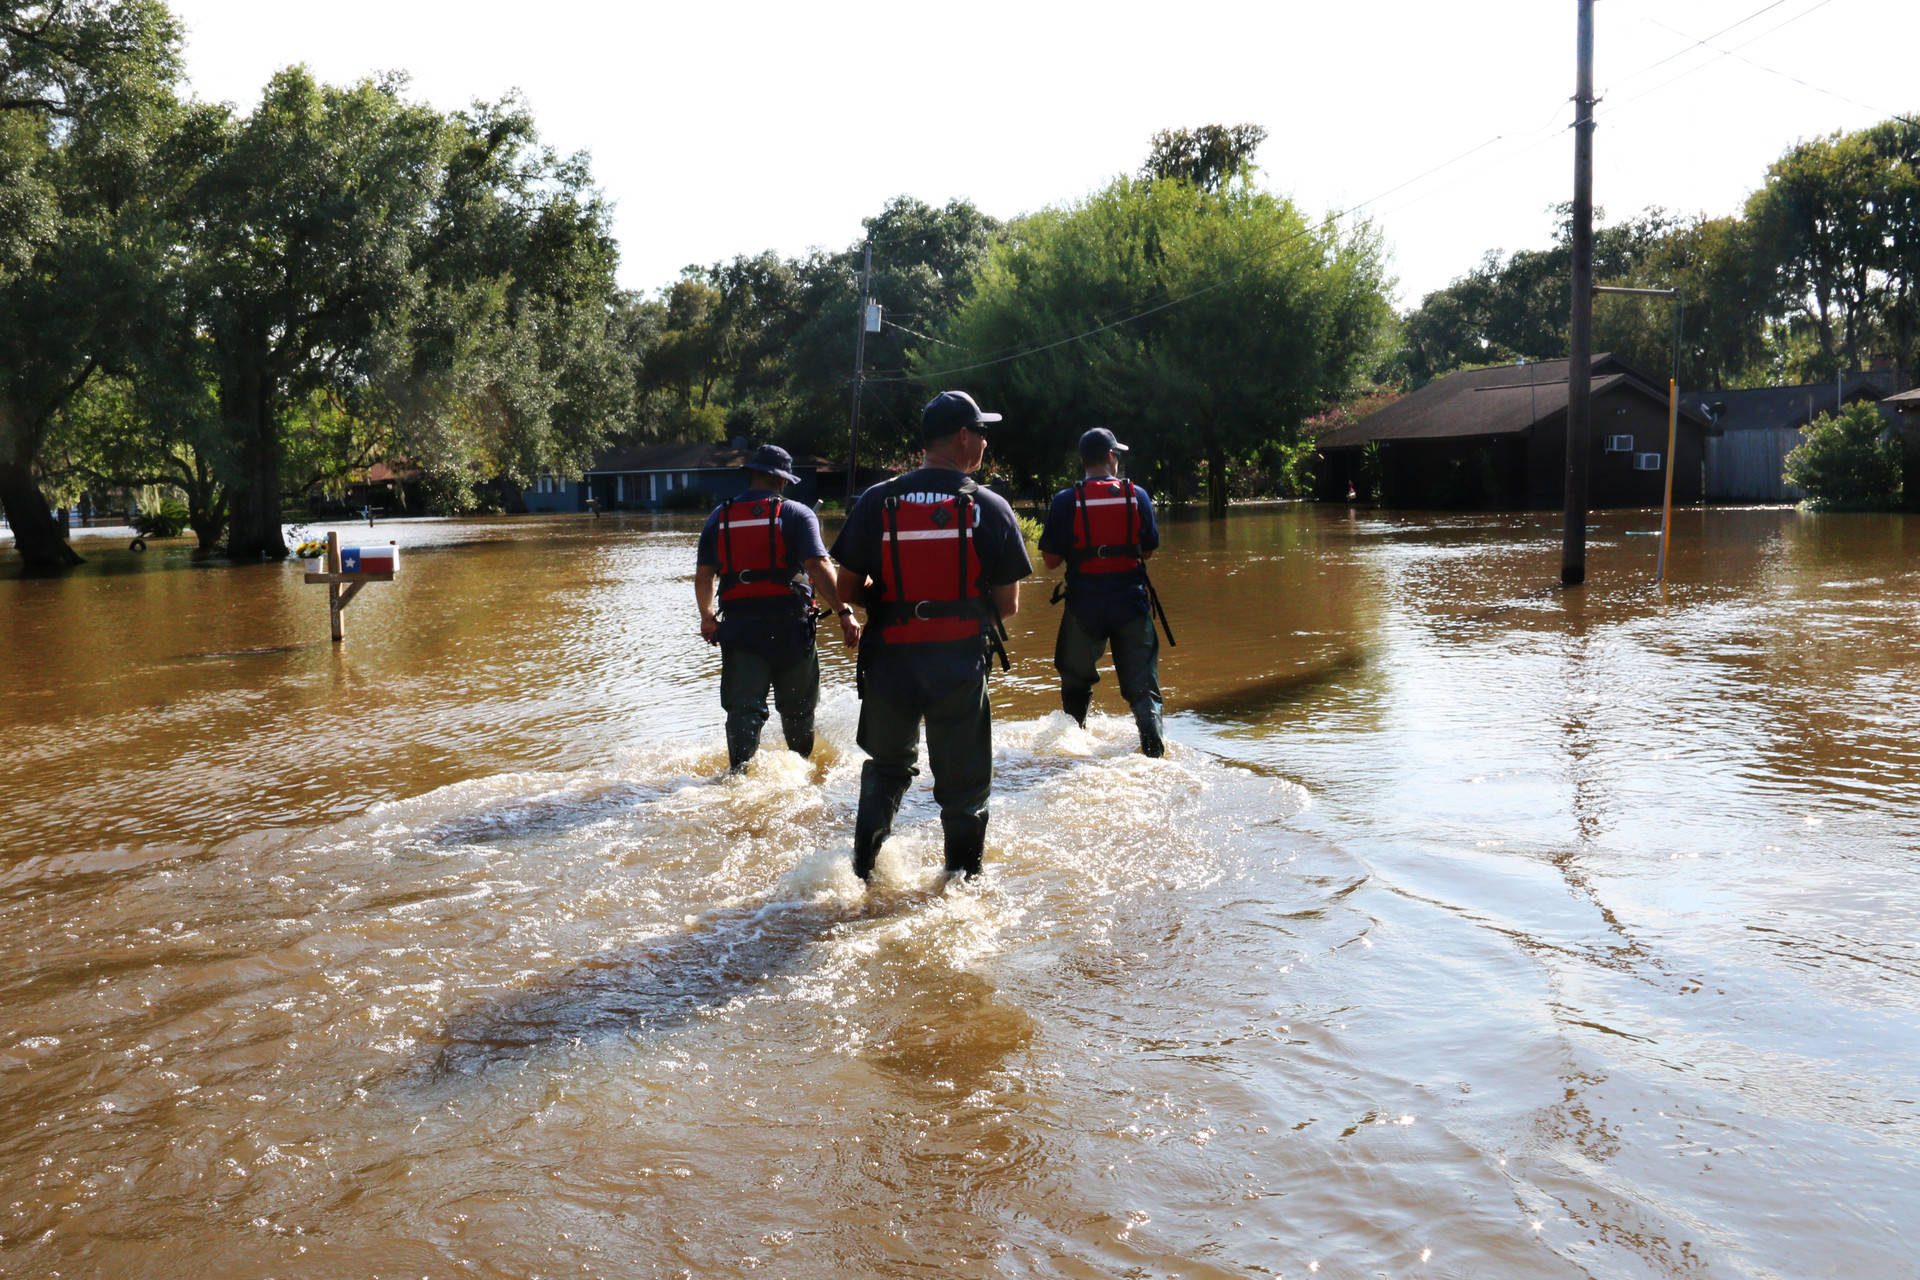 (From Left) Scott Lewis, Mike Wolfe and Dave Lauchner, members of Urban Search and Rescue California Task Force 7 and the Sacramento Fire Department, walk through Richwood, Texas, on Sept. 3, 2017. Richwood is one of many rural communities that continue to see major flooding over a week after Hurricane Harvey hit Texas. Alex Emslie/KQED